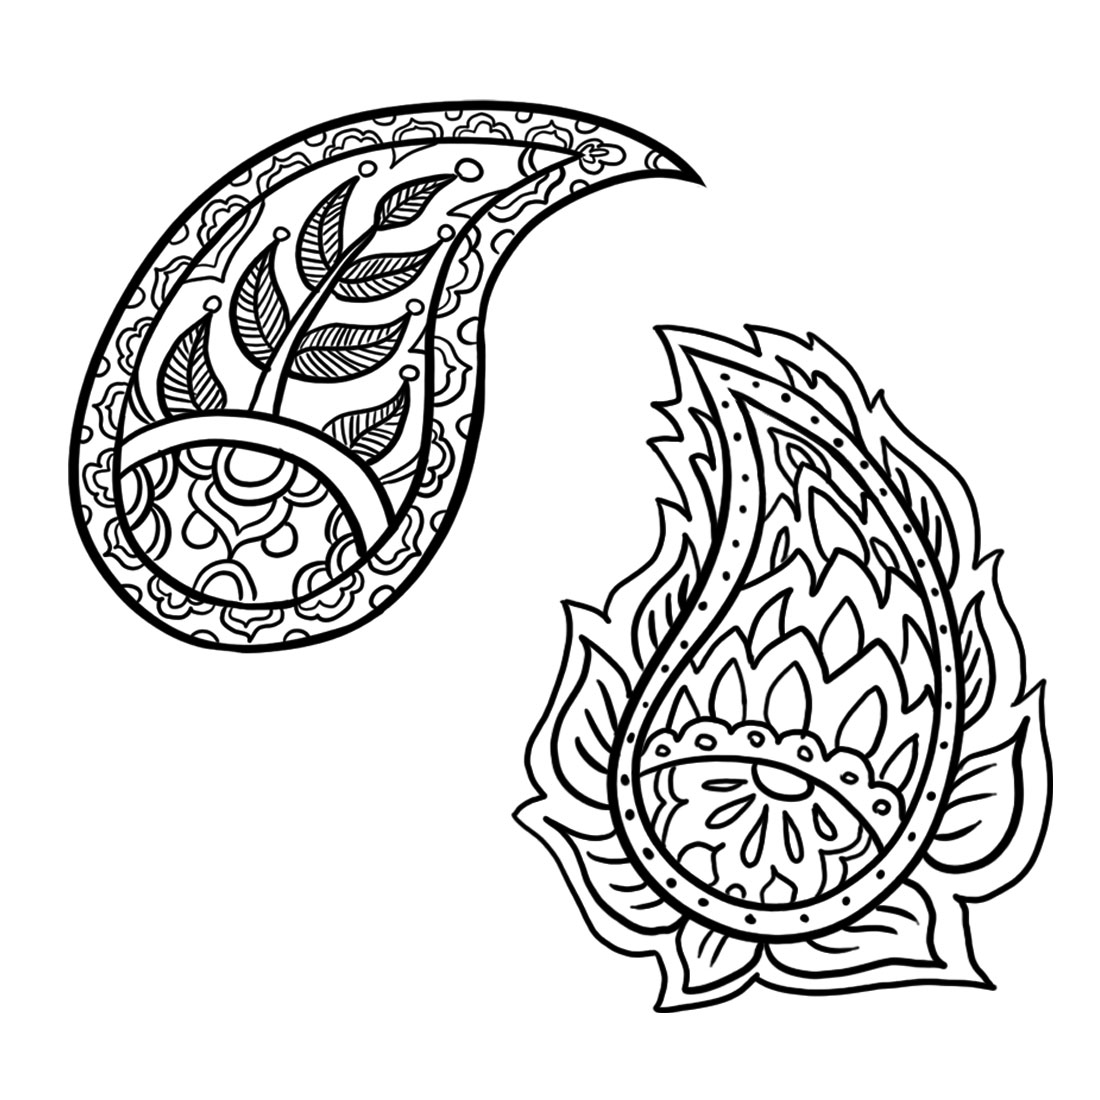 1100x1100 How To Draw A Paisley Design In 6 Steps People And Things